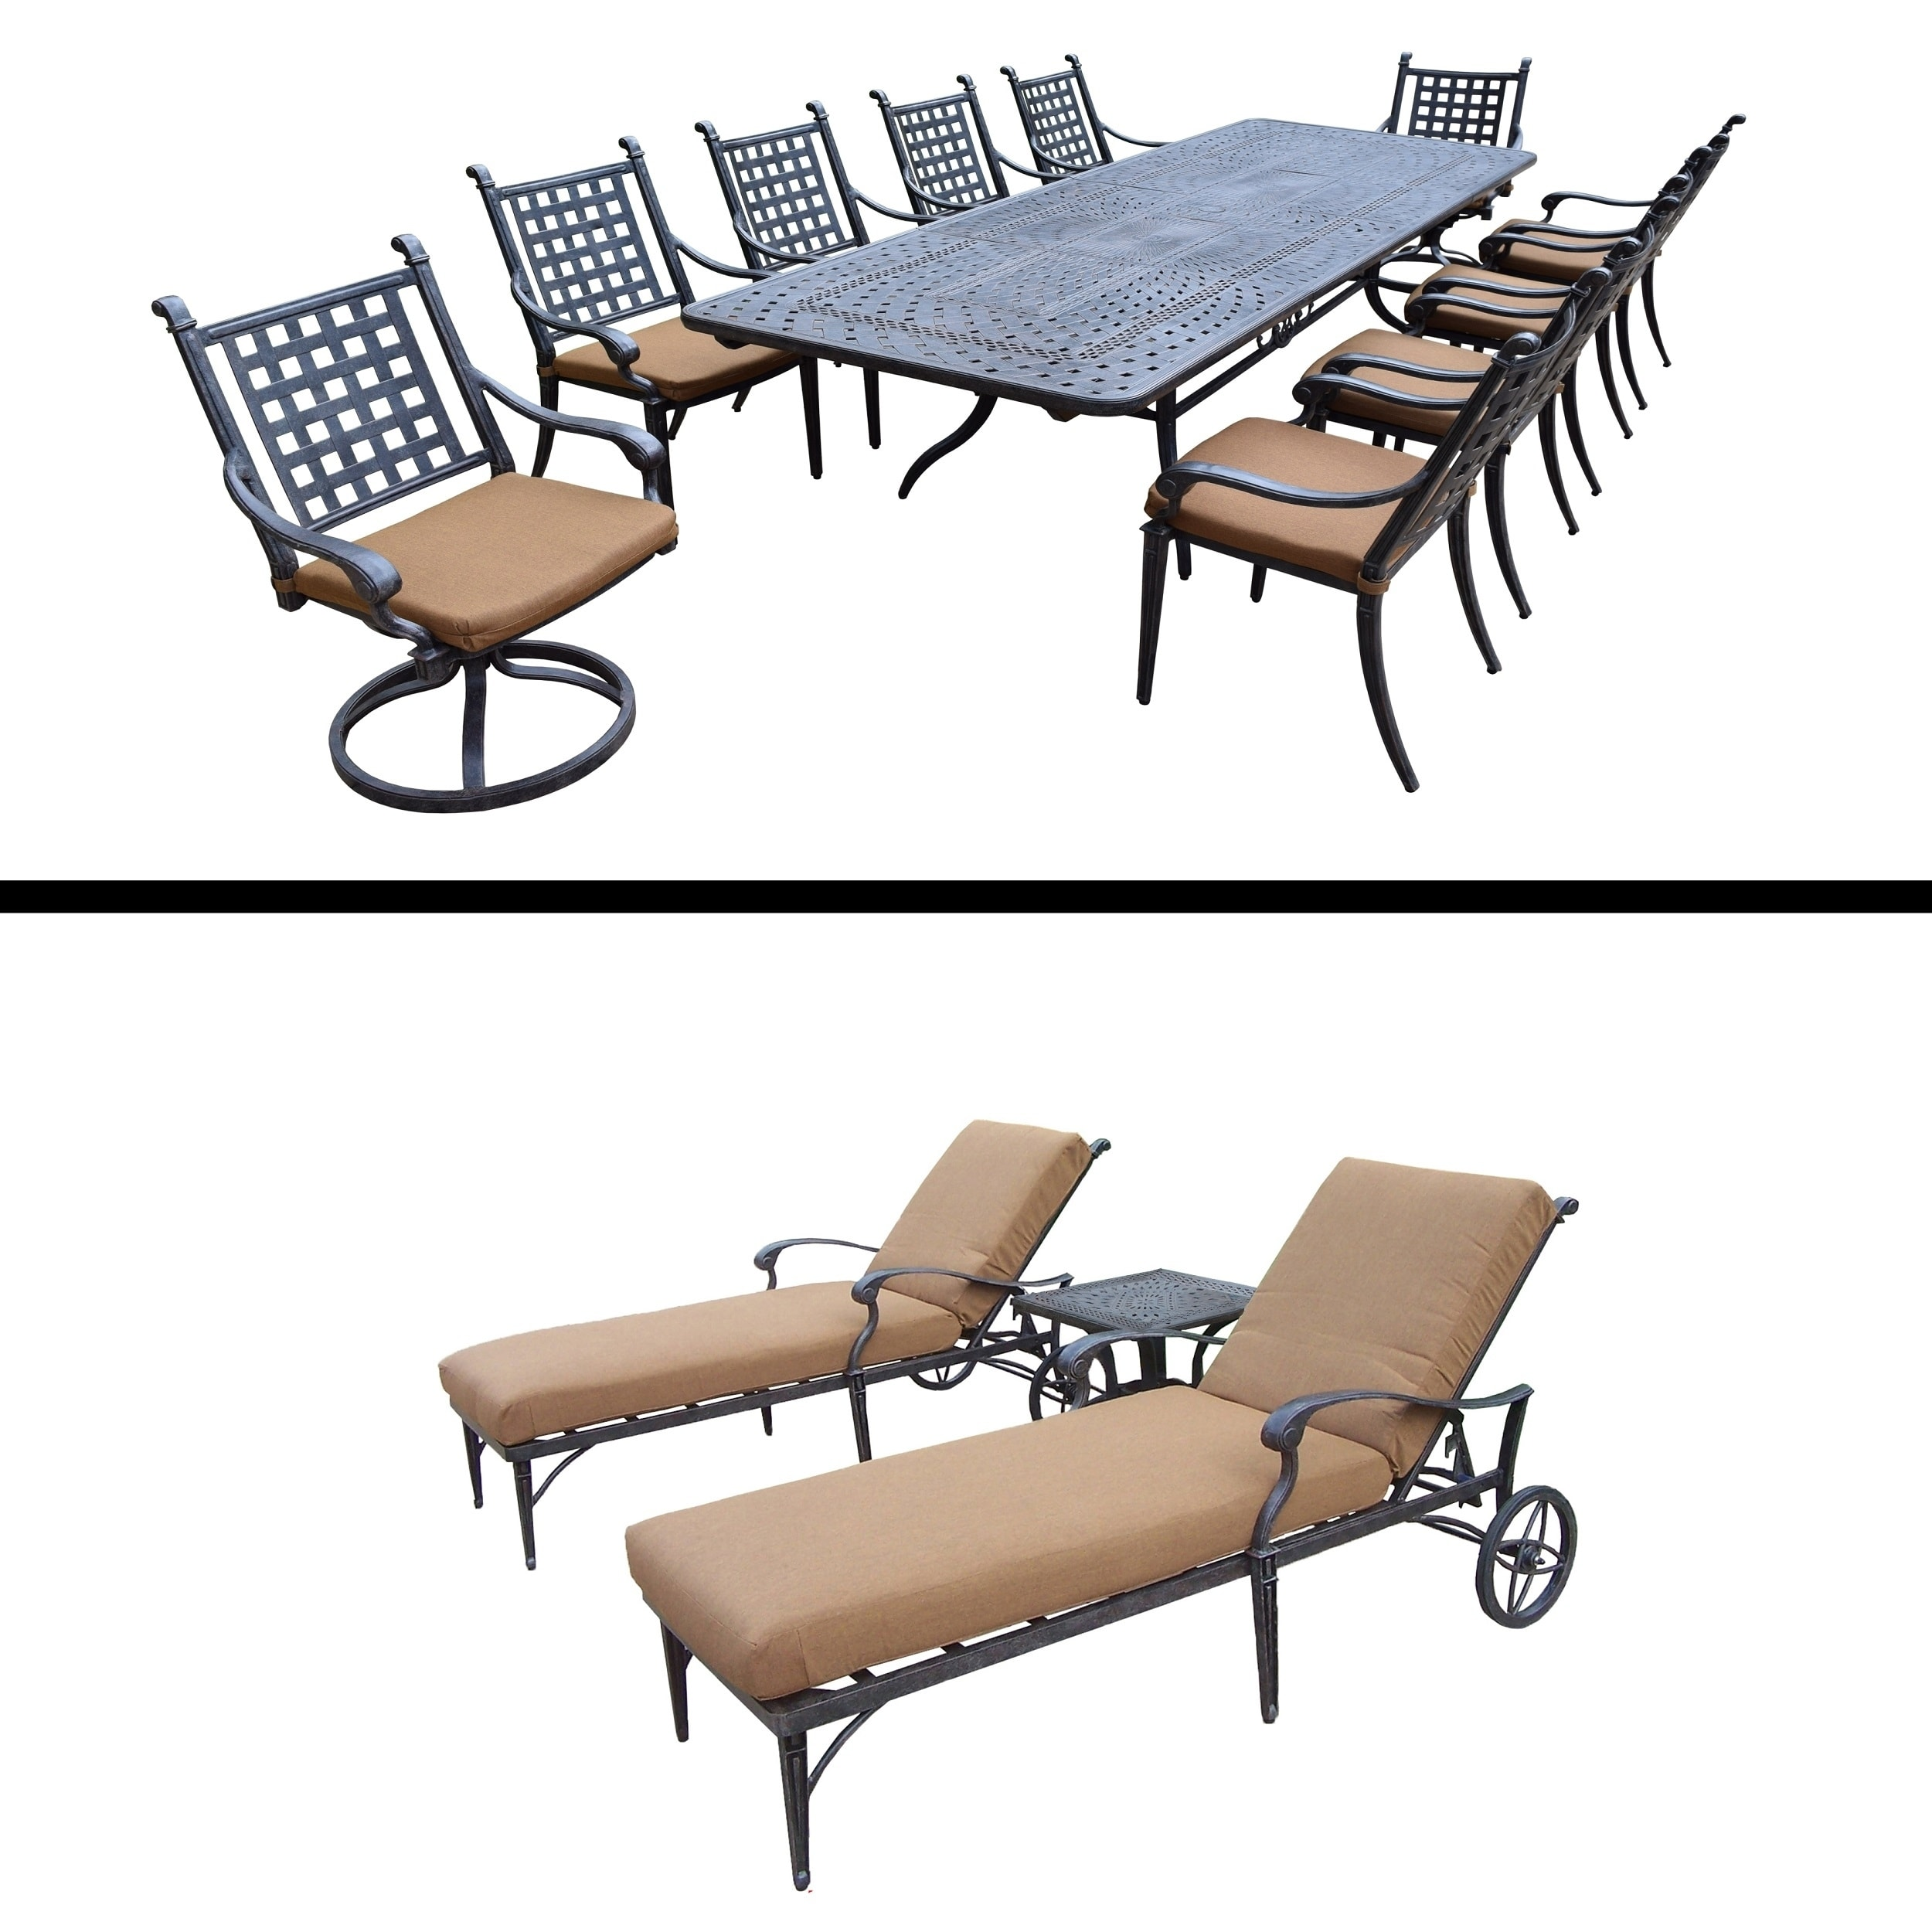 Oakland Living 11 Pc Dining Room Set with Extendable Table and 3 Pc Chaise Lounge Set by Overstock